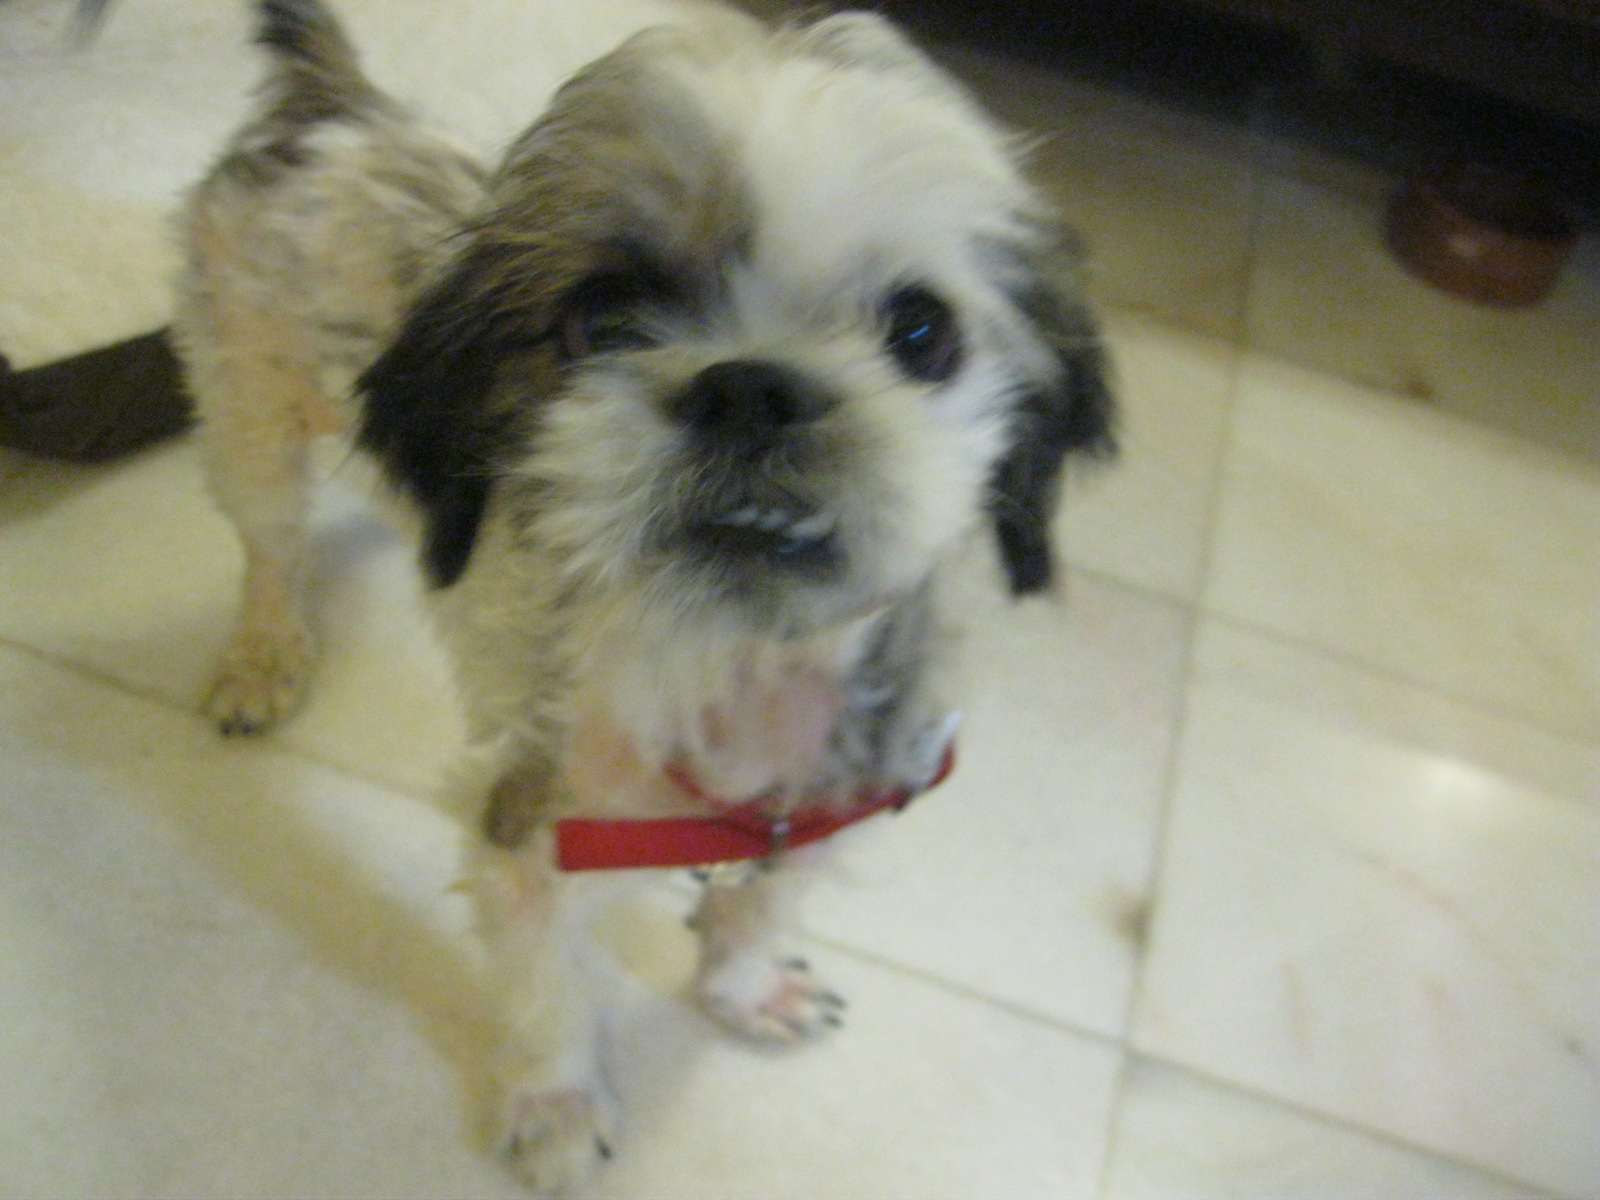 Husky Mixed With Shih Tzu Vincent, the shih tzu adopted